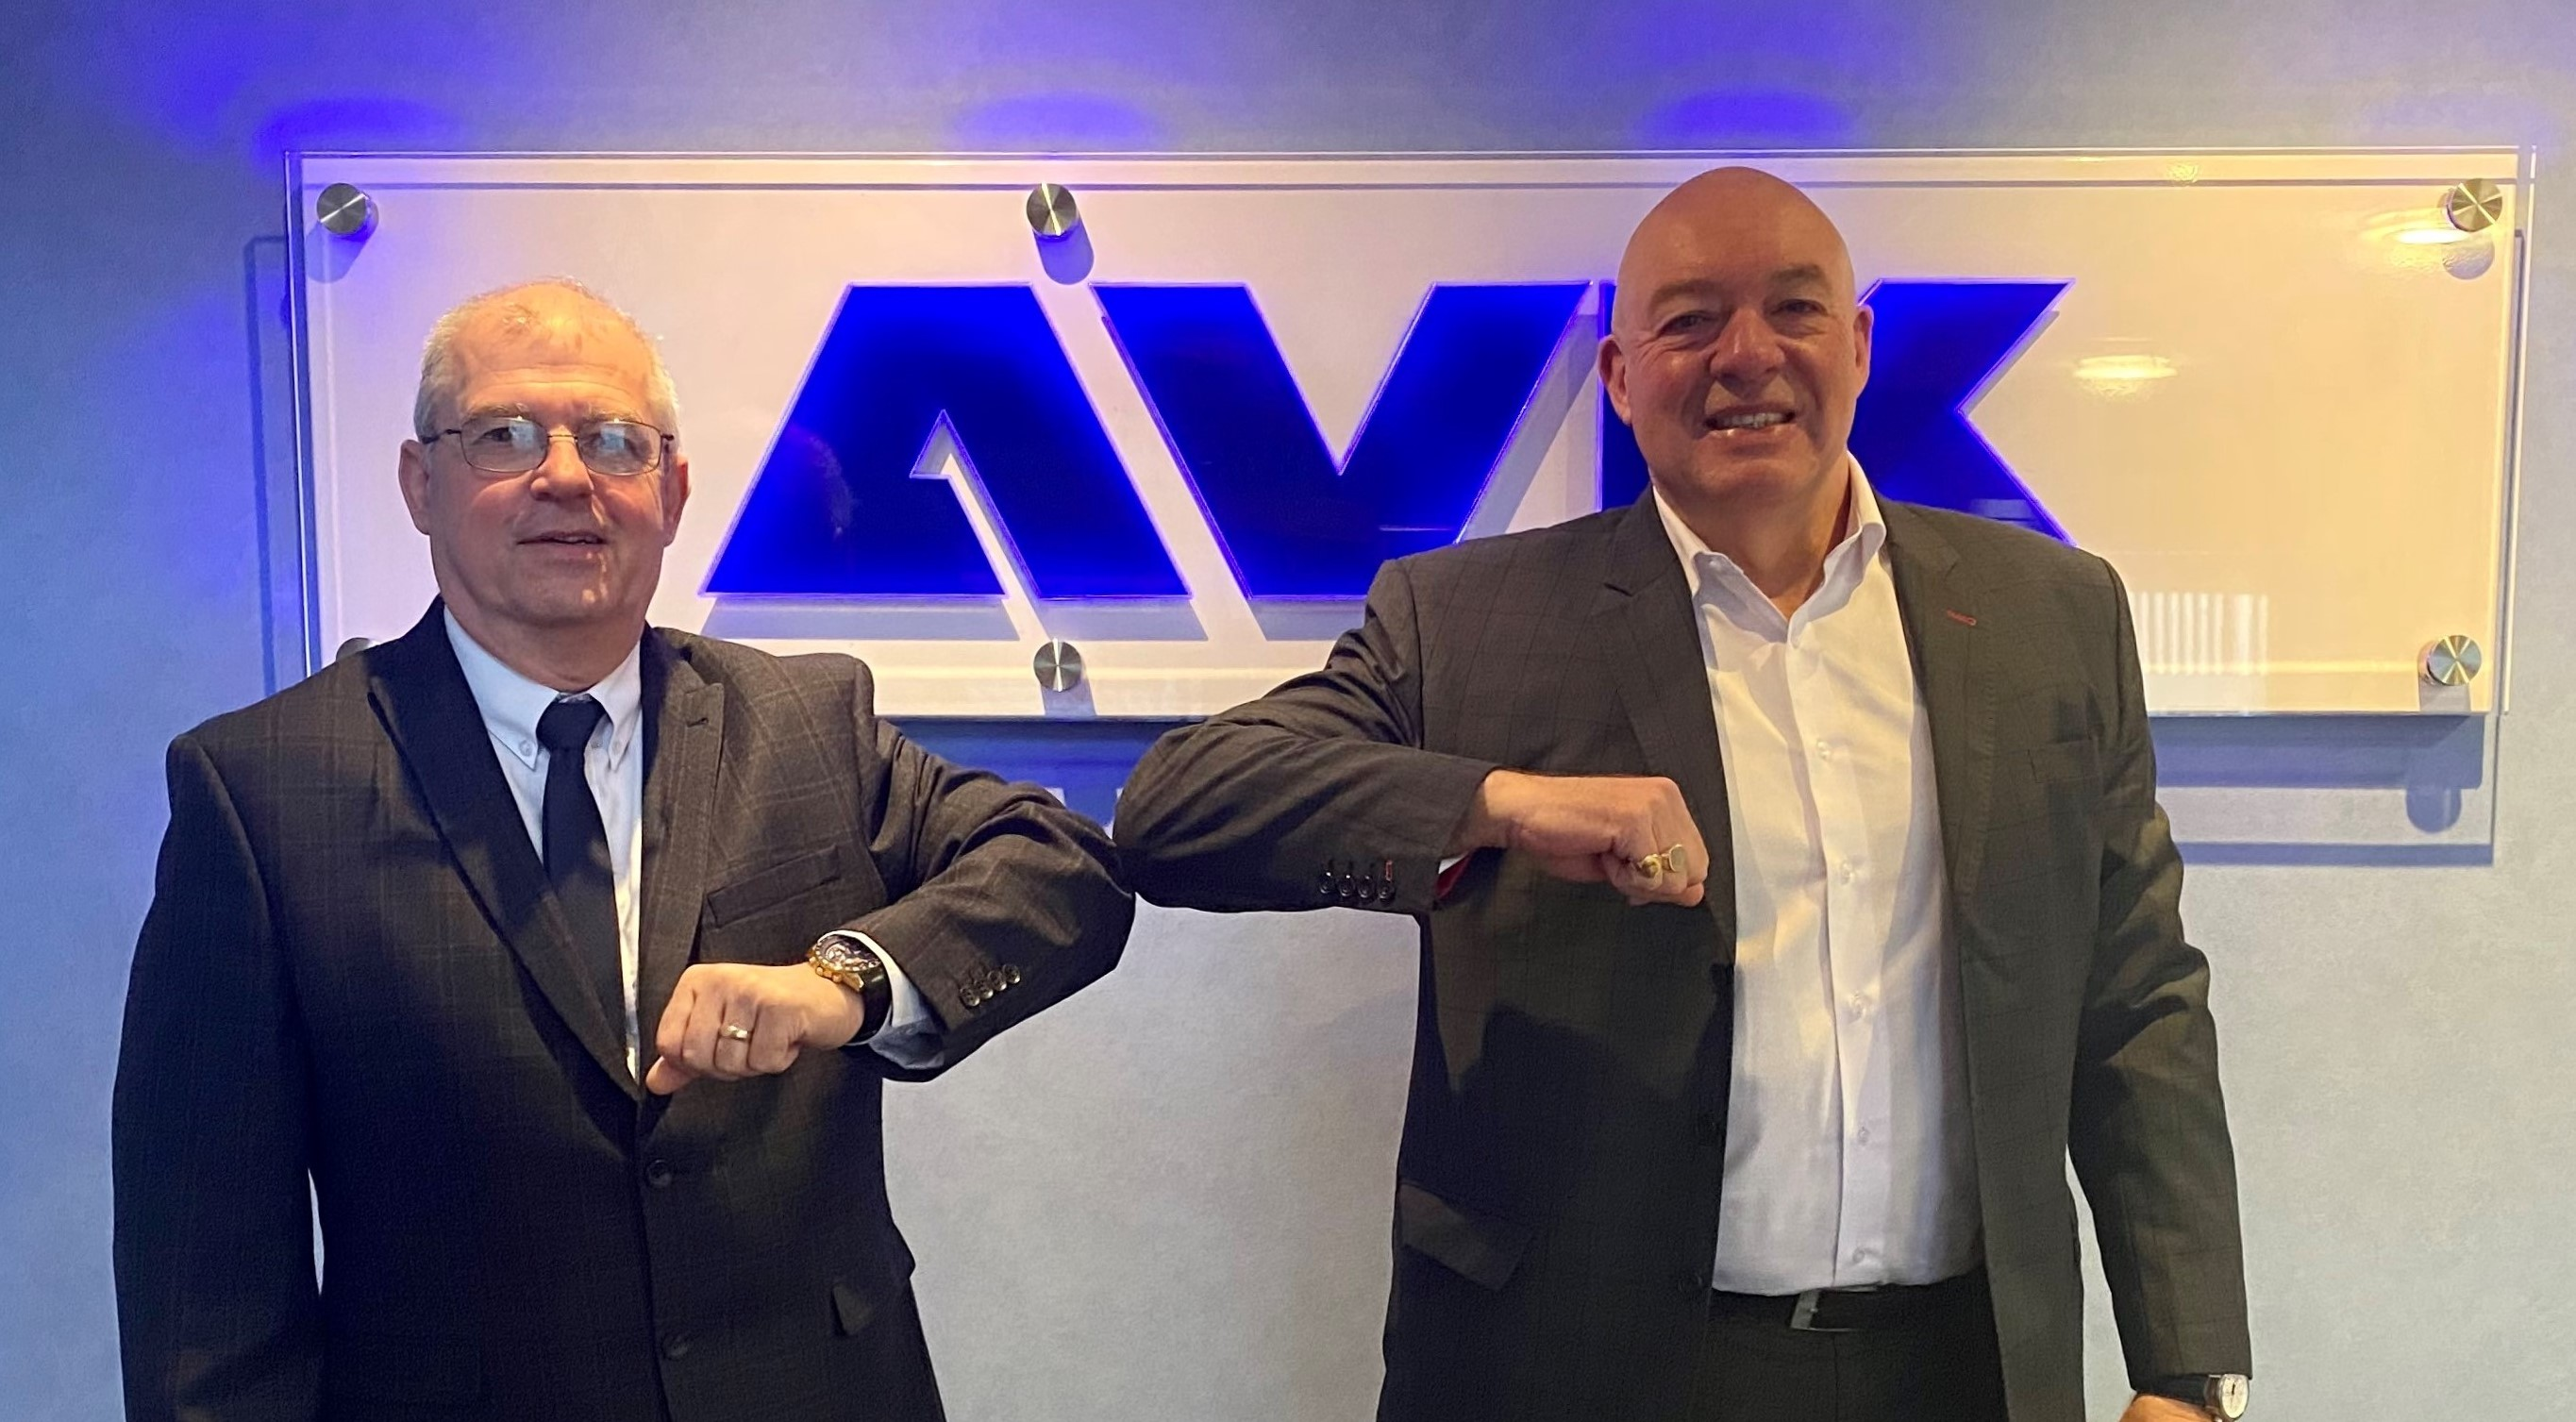 AVK announces acquisition of Enhanced Control Systems Ltd